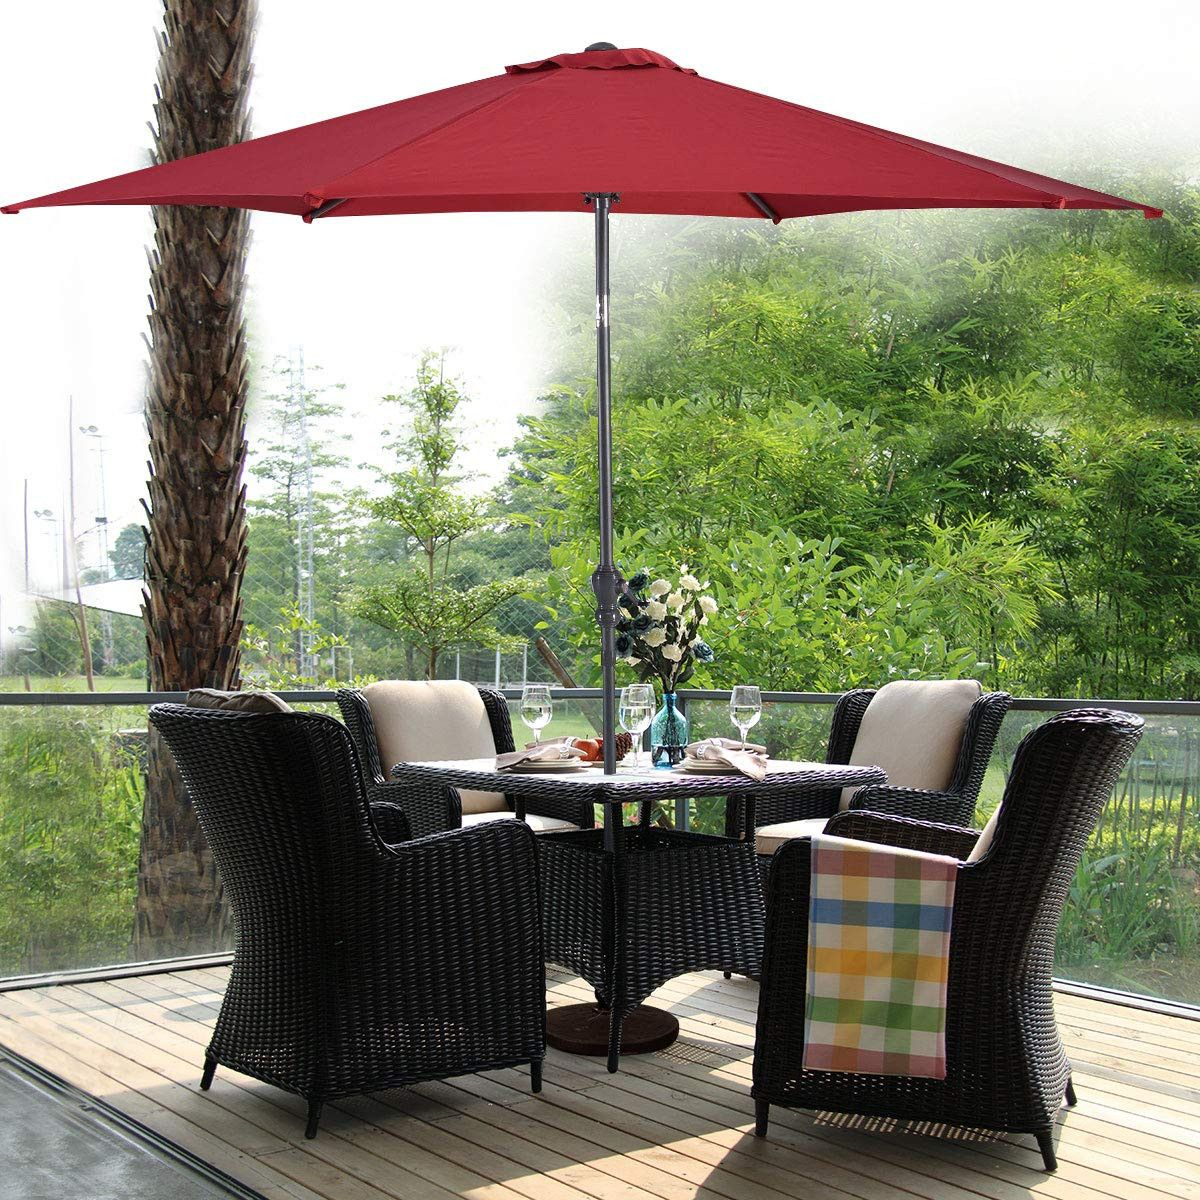 Pin on Outdoor Furniture & Patio Set on a Budget